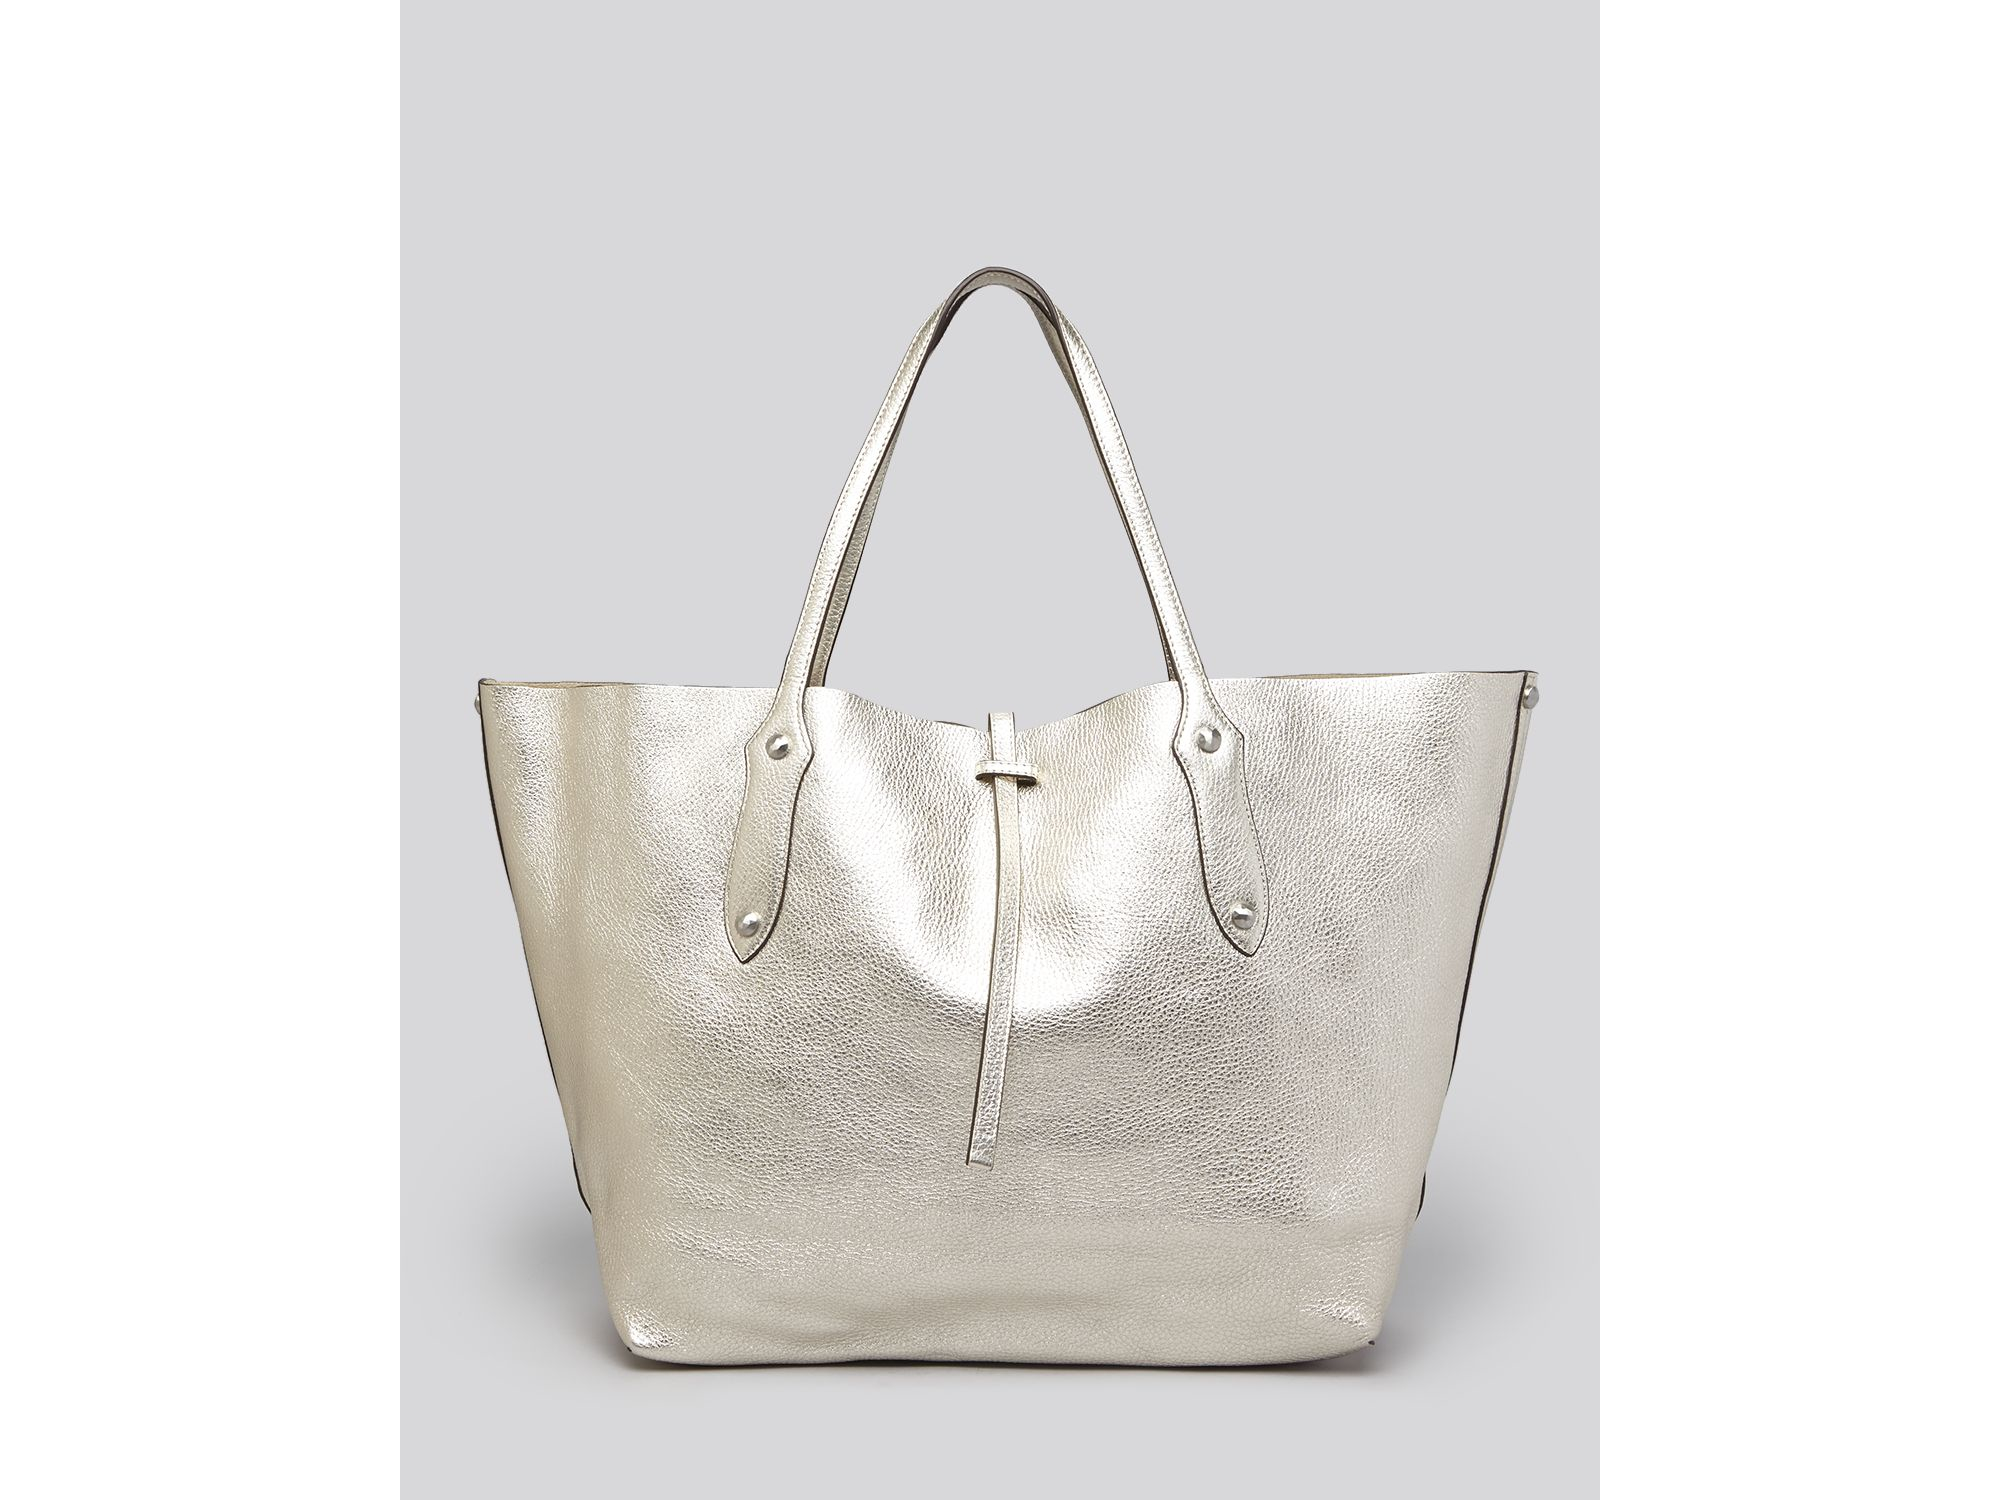 Annabel Ingall Isabella Large Metallic Leather Tote Best Sale Cheap Online Get Online HR9cOoL